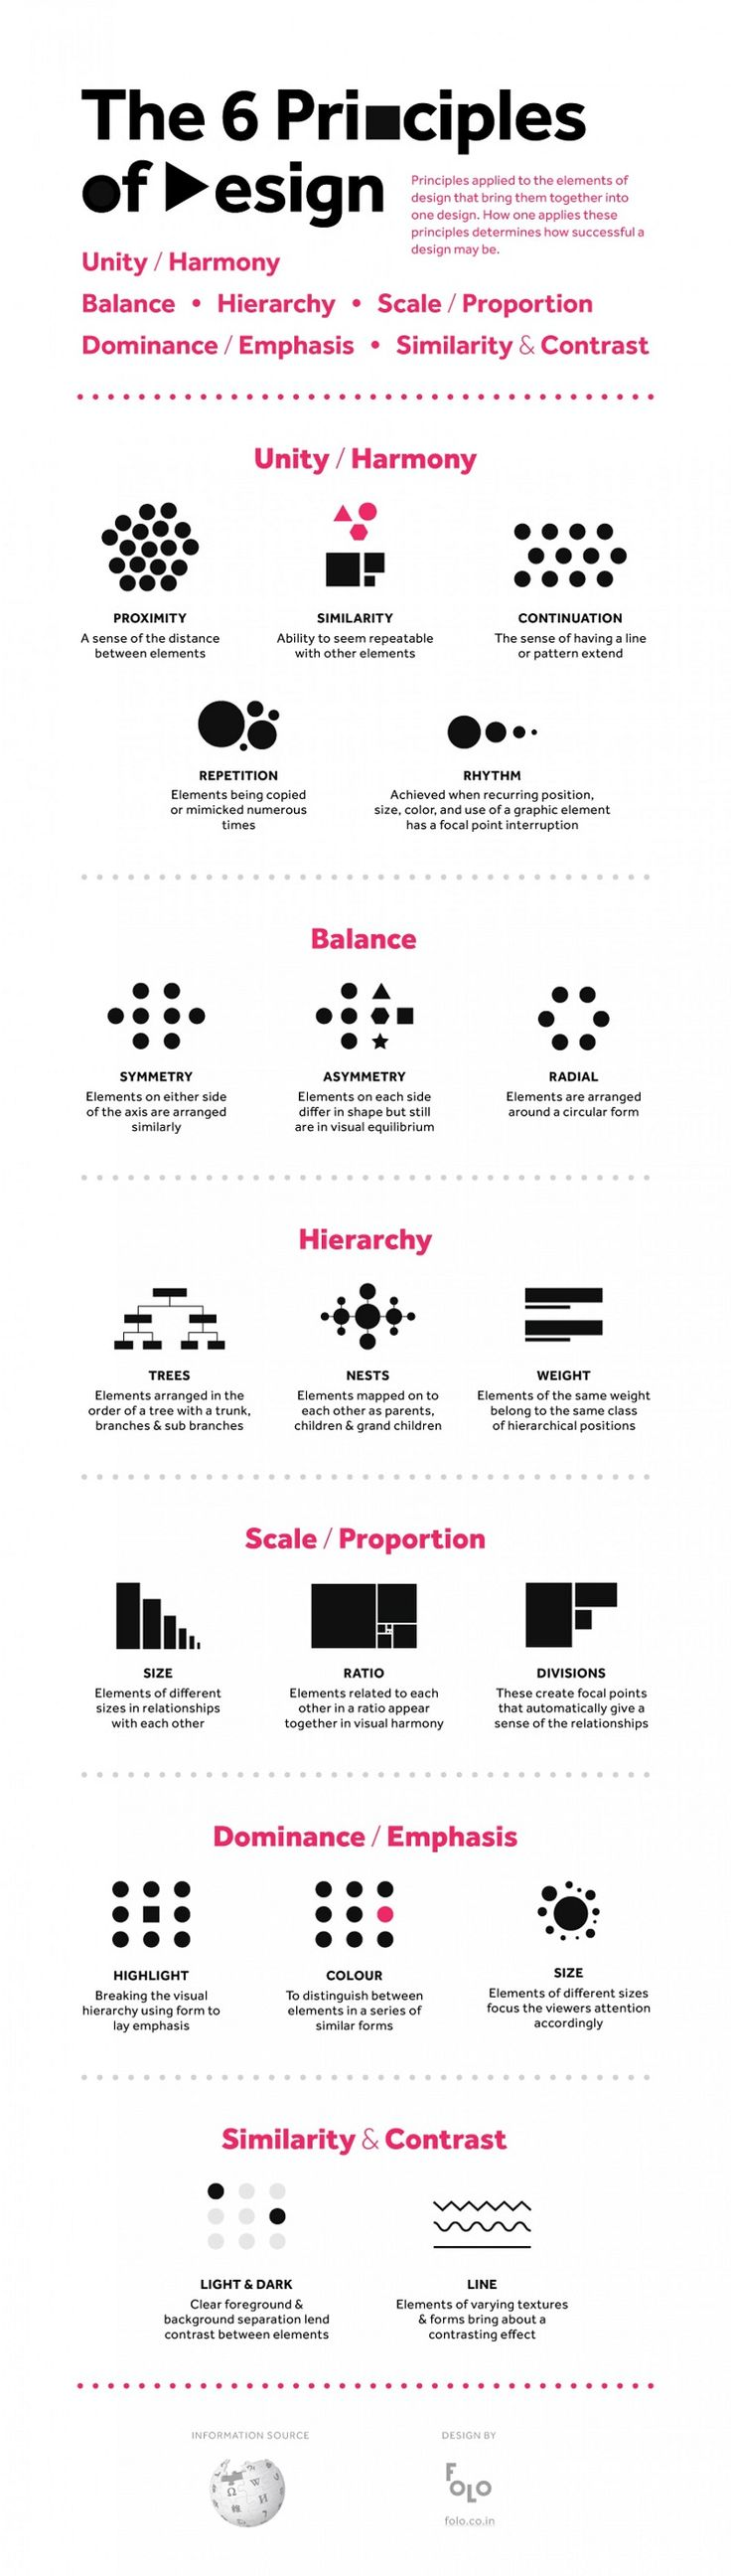 Cute infographic on the Principles of Design!